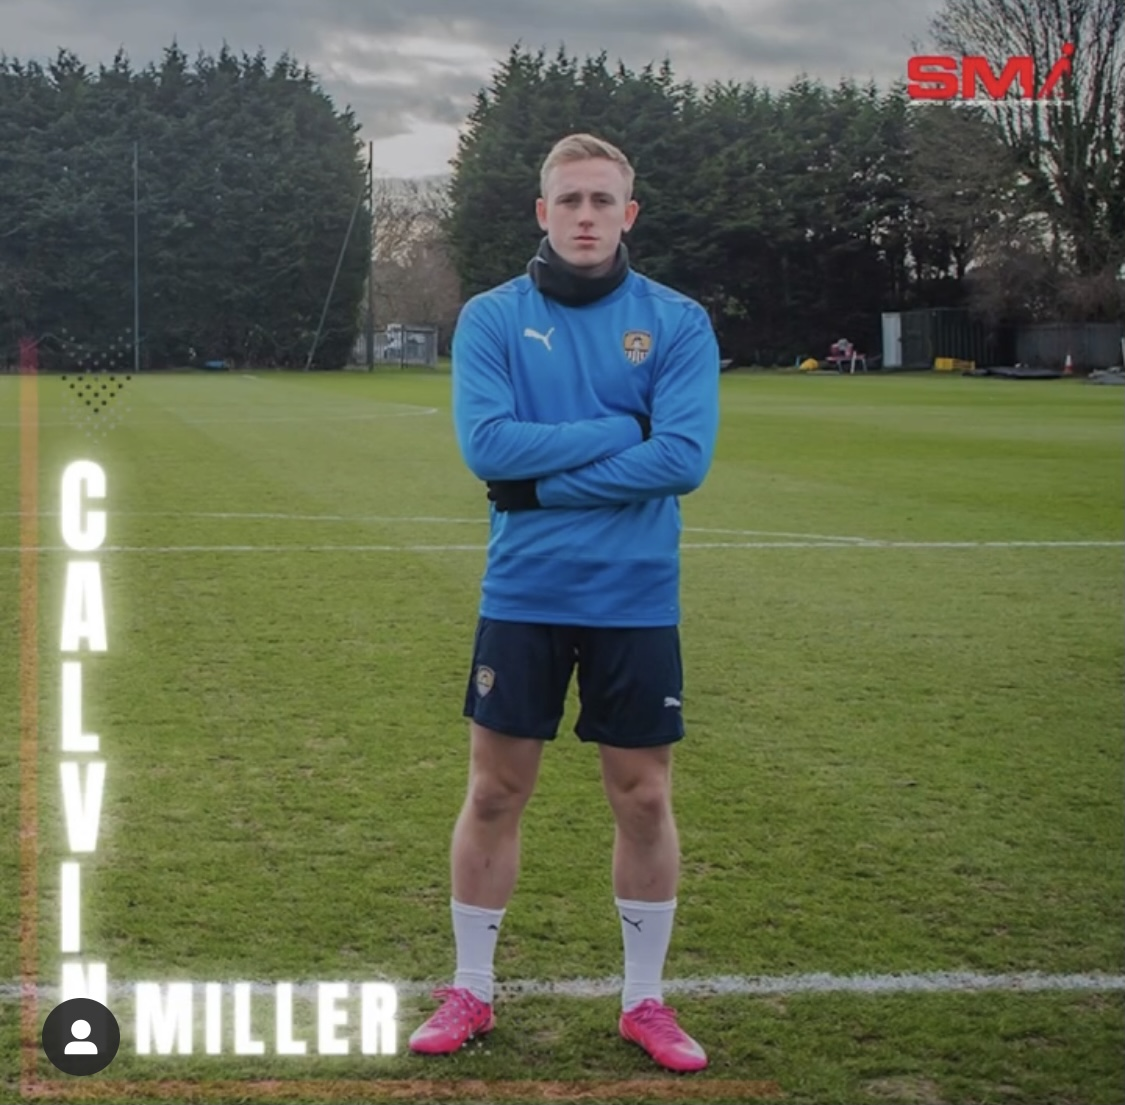 Calvin Miller signs for Notts County on loan